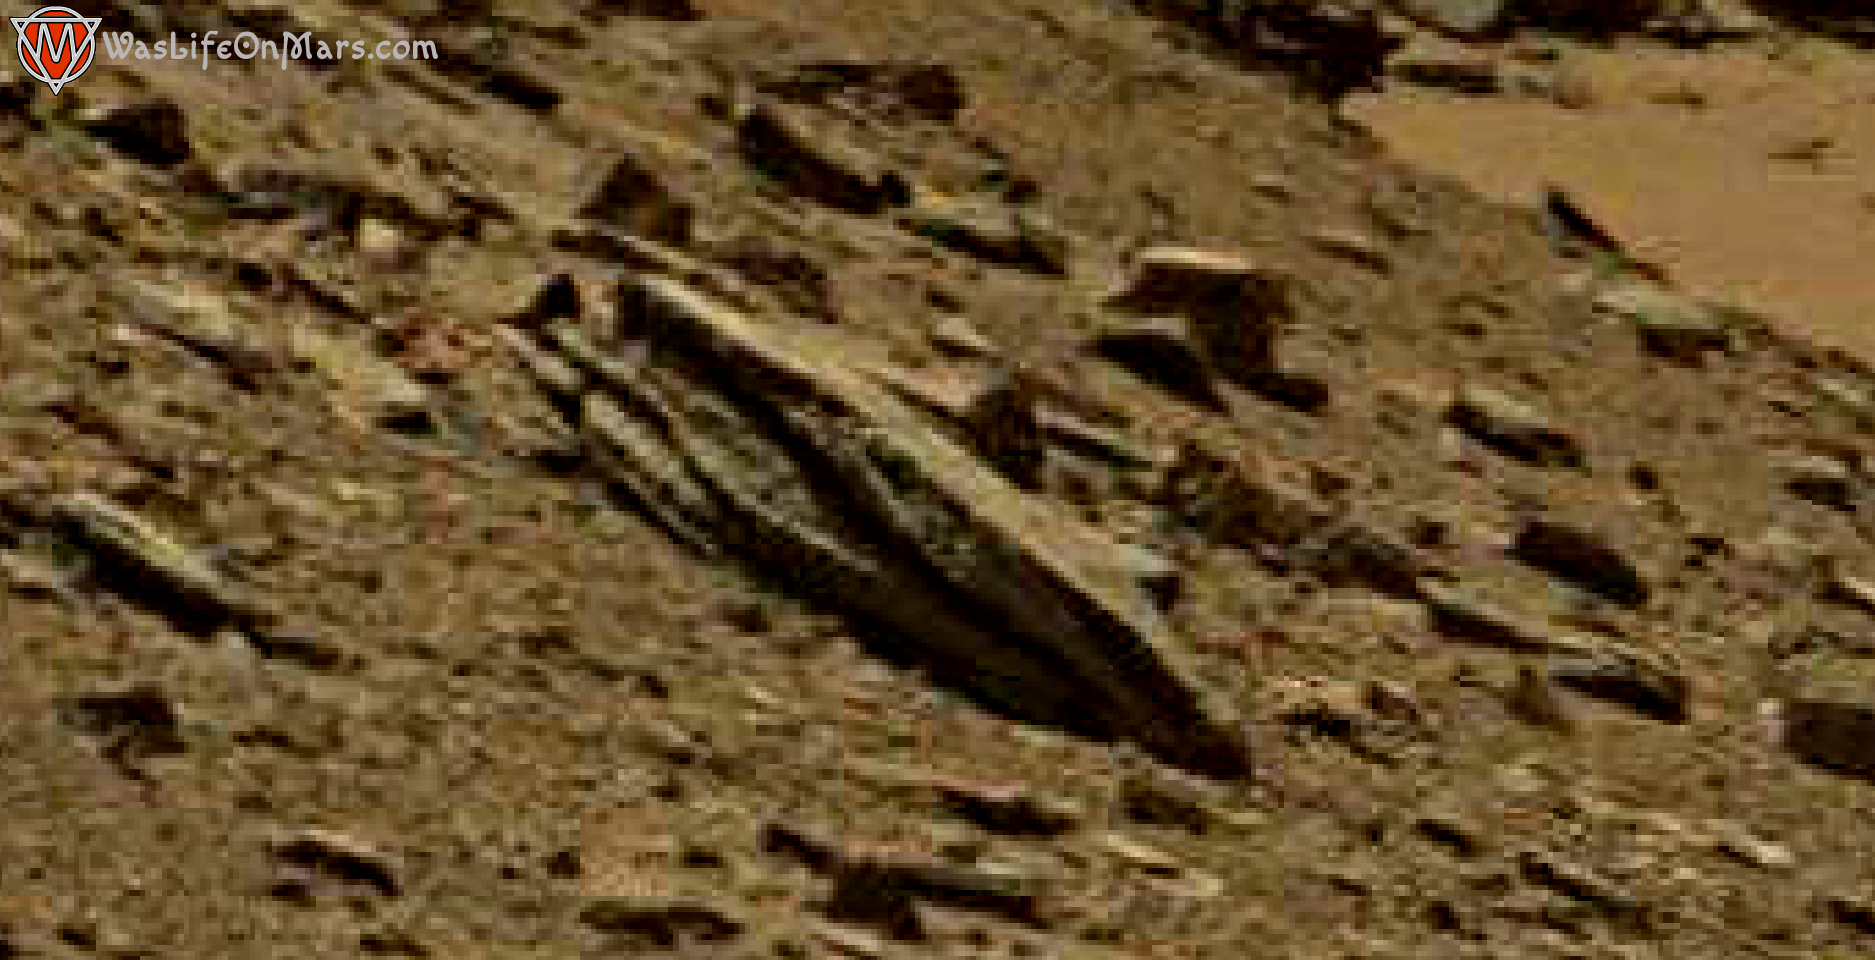 mars sol 1434 anomaly artifacts 1a1 was life on mars